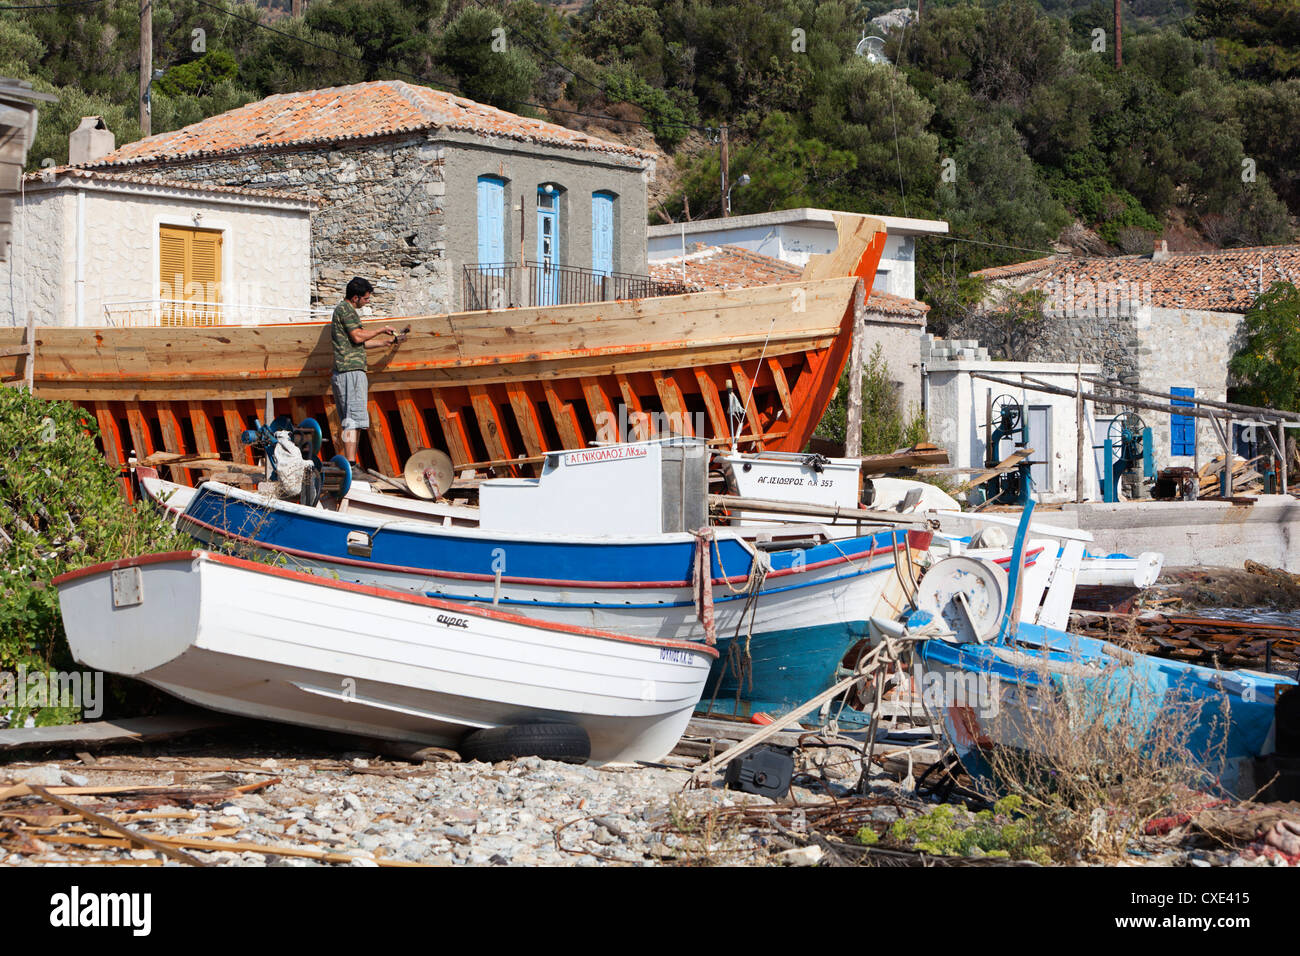 Traditional boat building yard, Aghios Isidhoros, Samos, Aegean Islands, Greece - Stock Image